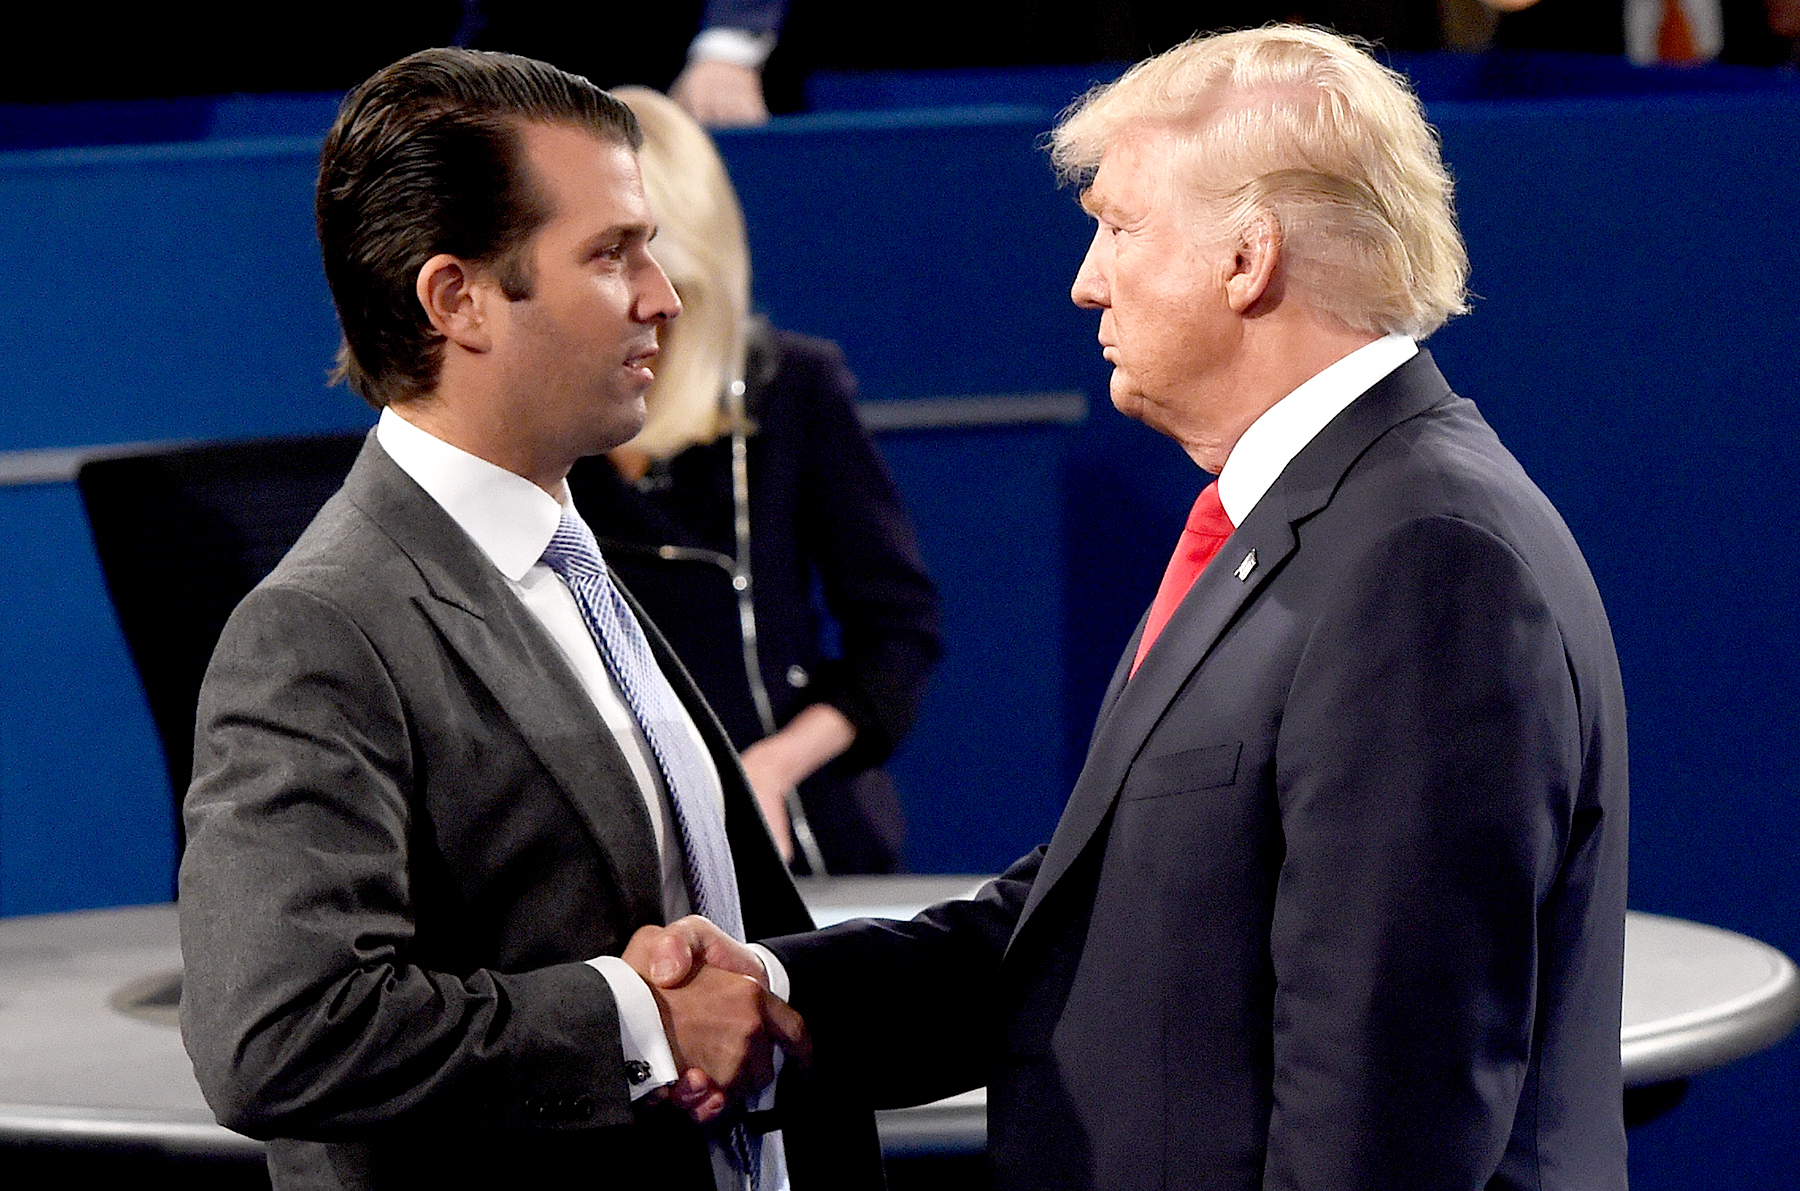 Donald Trump Jr. greets his father, Donald Trump, during the town hall debate at Washington University in St. Louis, Missouri, on October 9, 2016.